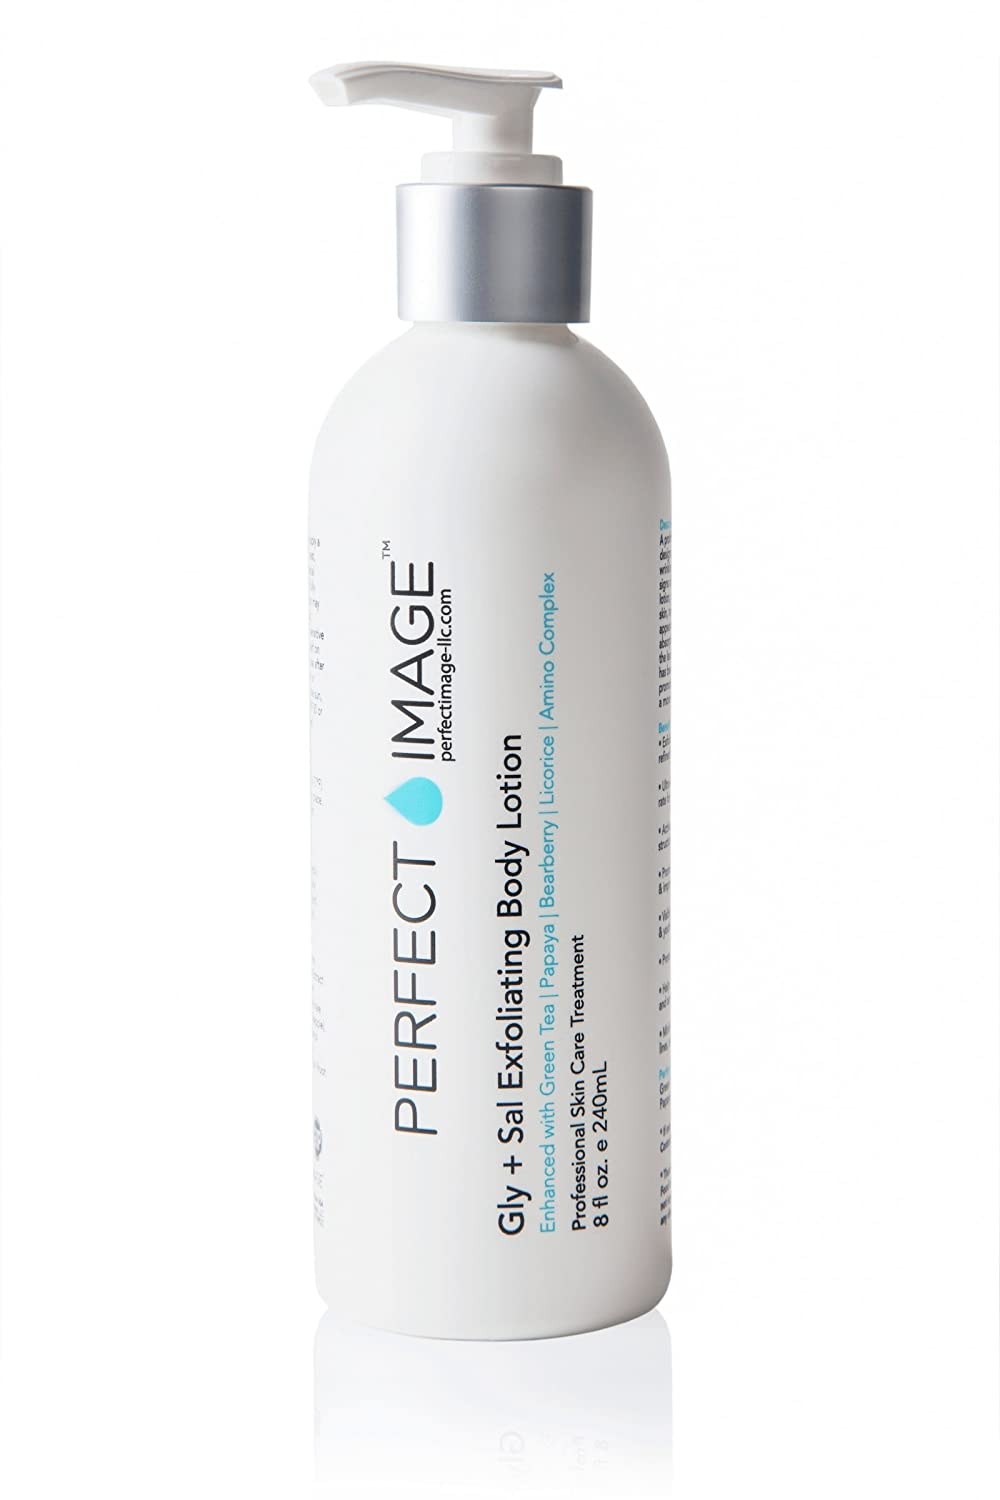 Gly 10% + Sal 2% Exfoliating Body Lotion - Enhanced with Green Tea   Papaya   Bearberry   Licorice   Amino Complex